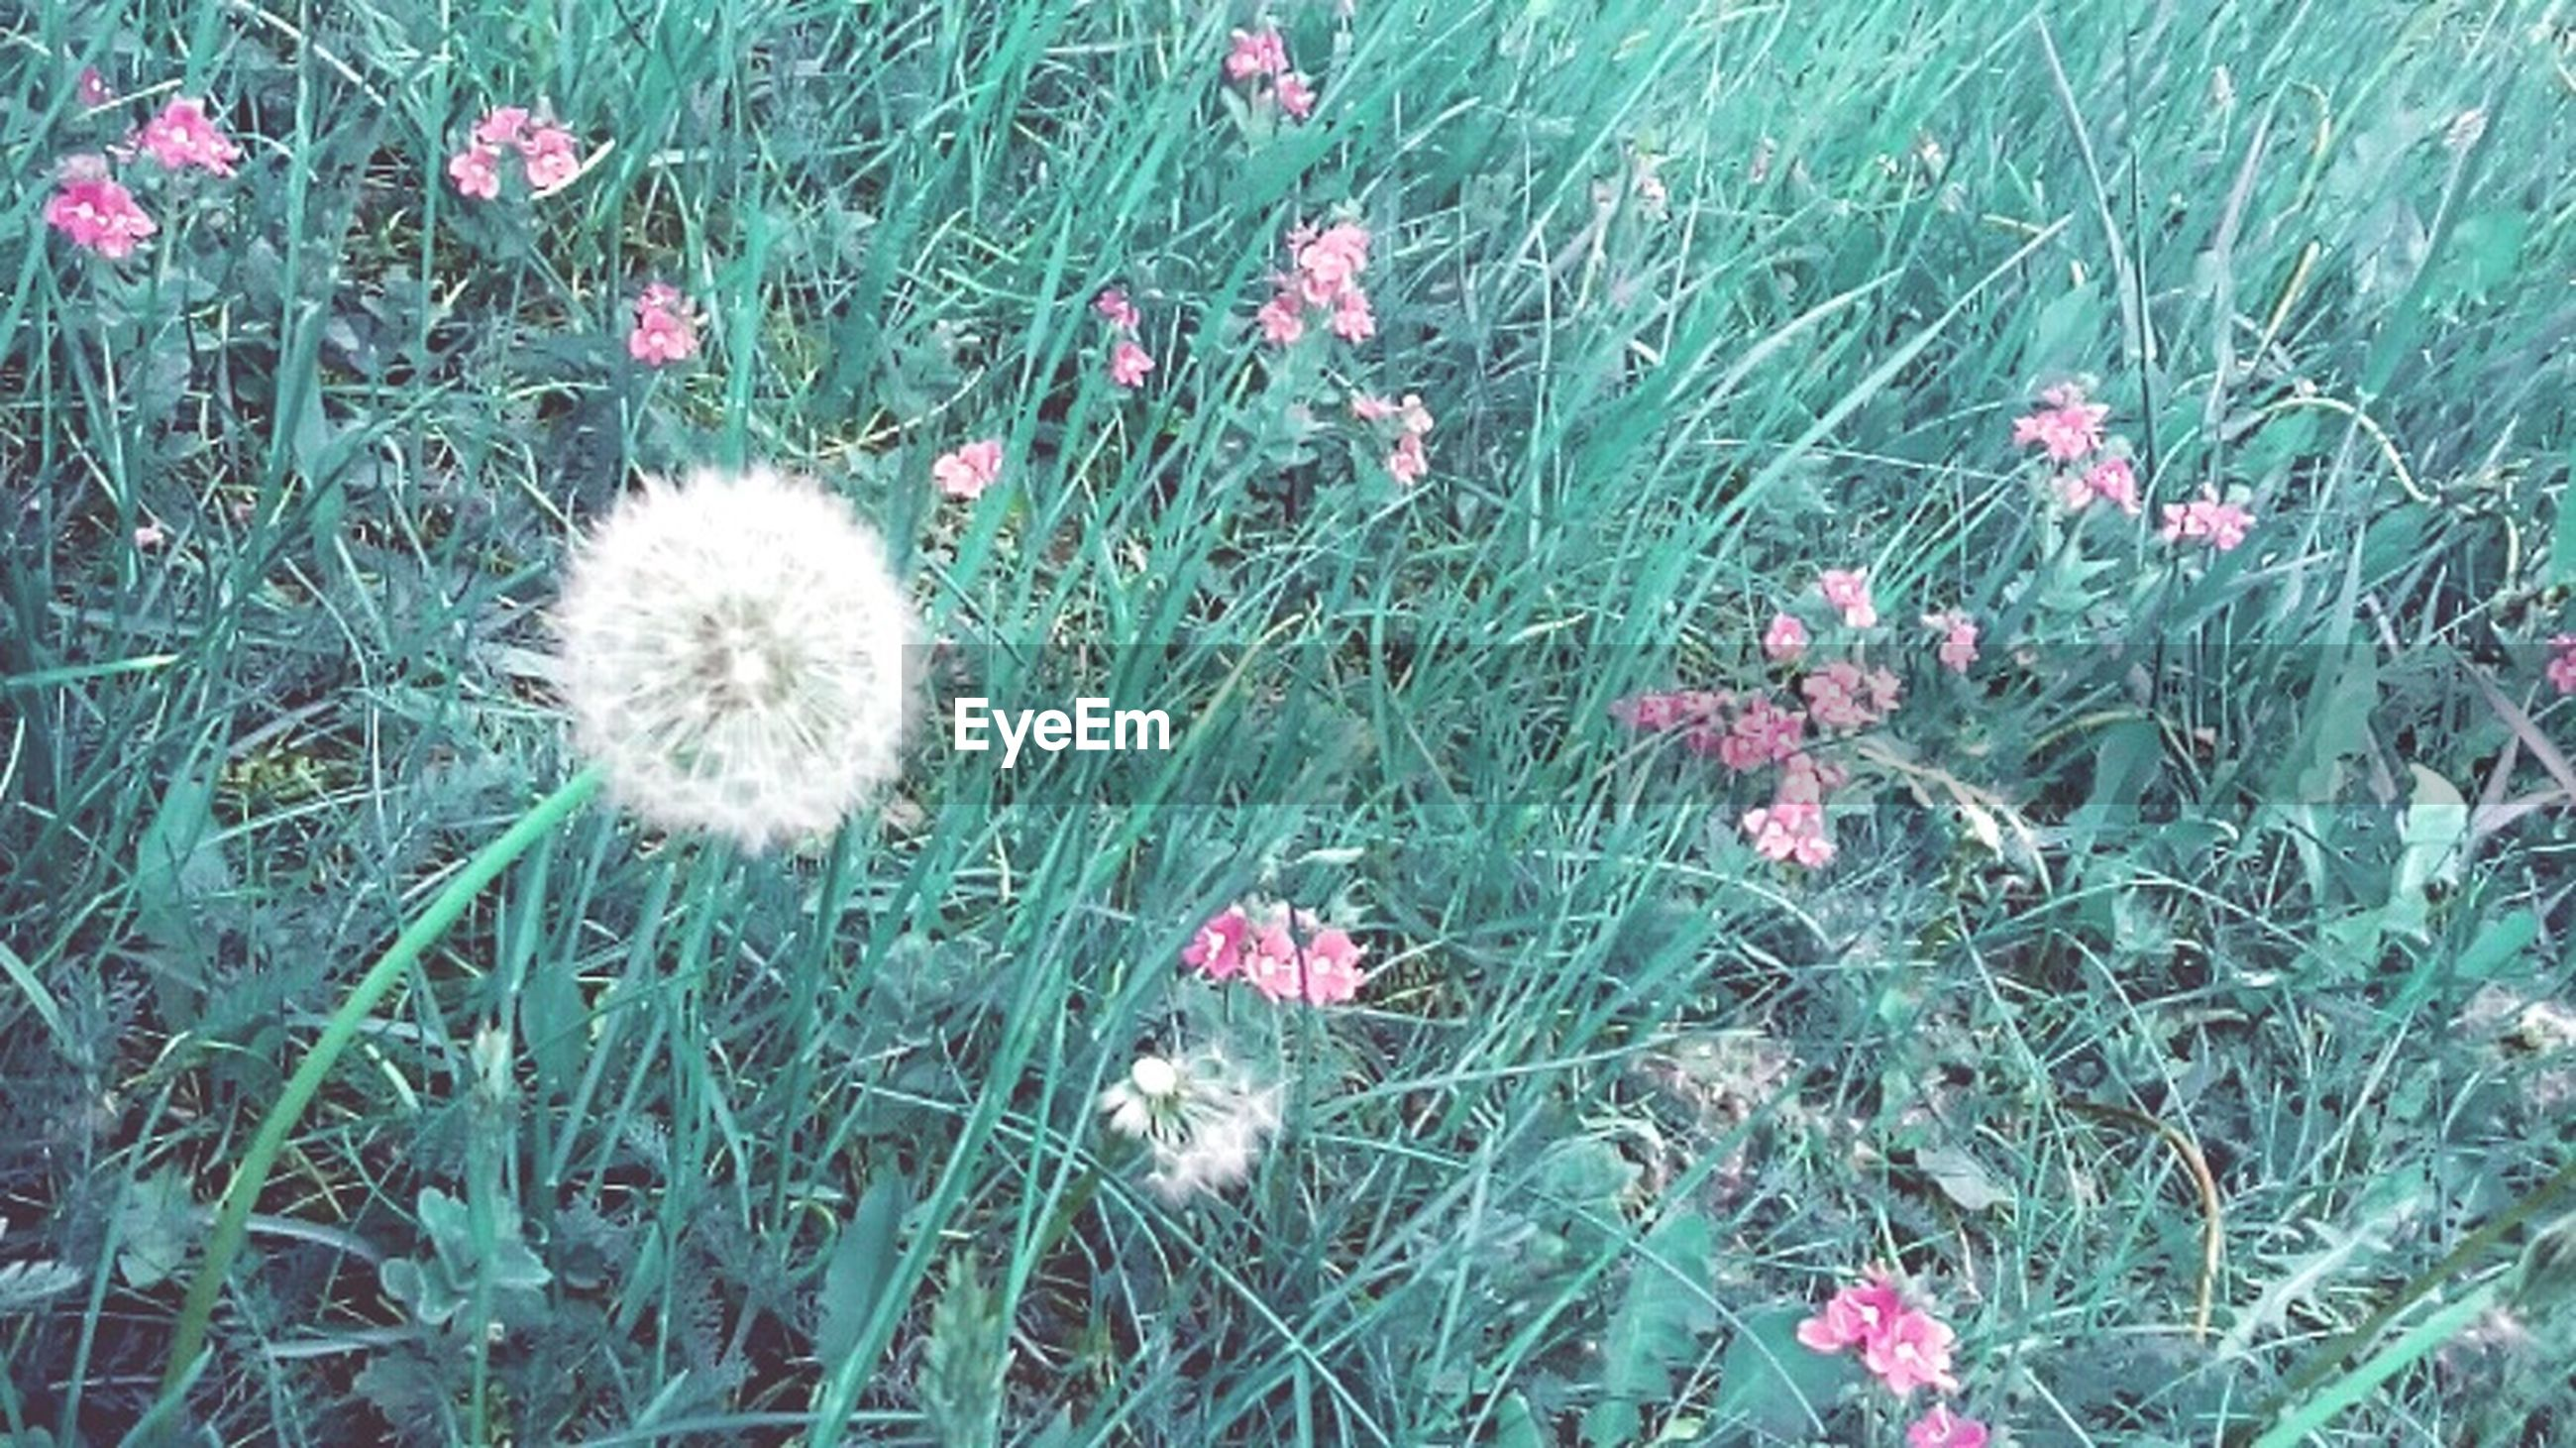 flower, growth, freshness, fragility, field, grass, beauty in nature, plant, nature, flower head, blooming, high angle view, petal, wildflower, uncultivated, green color, in bloom, day, no people, growing